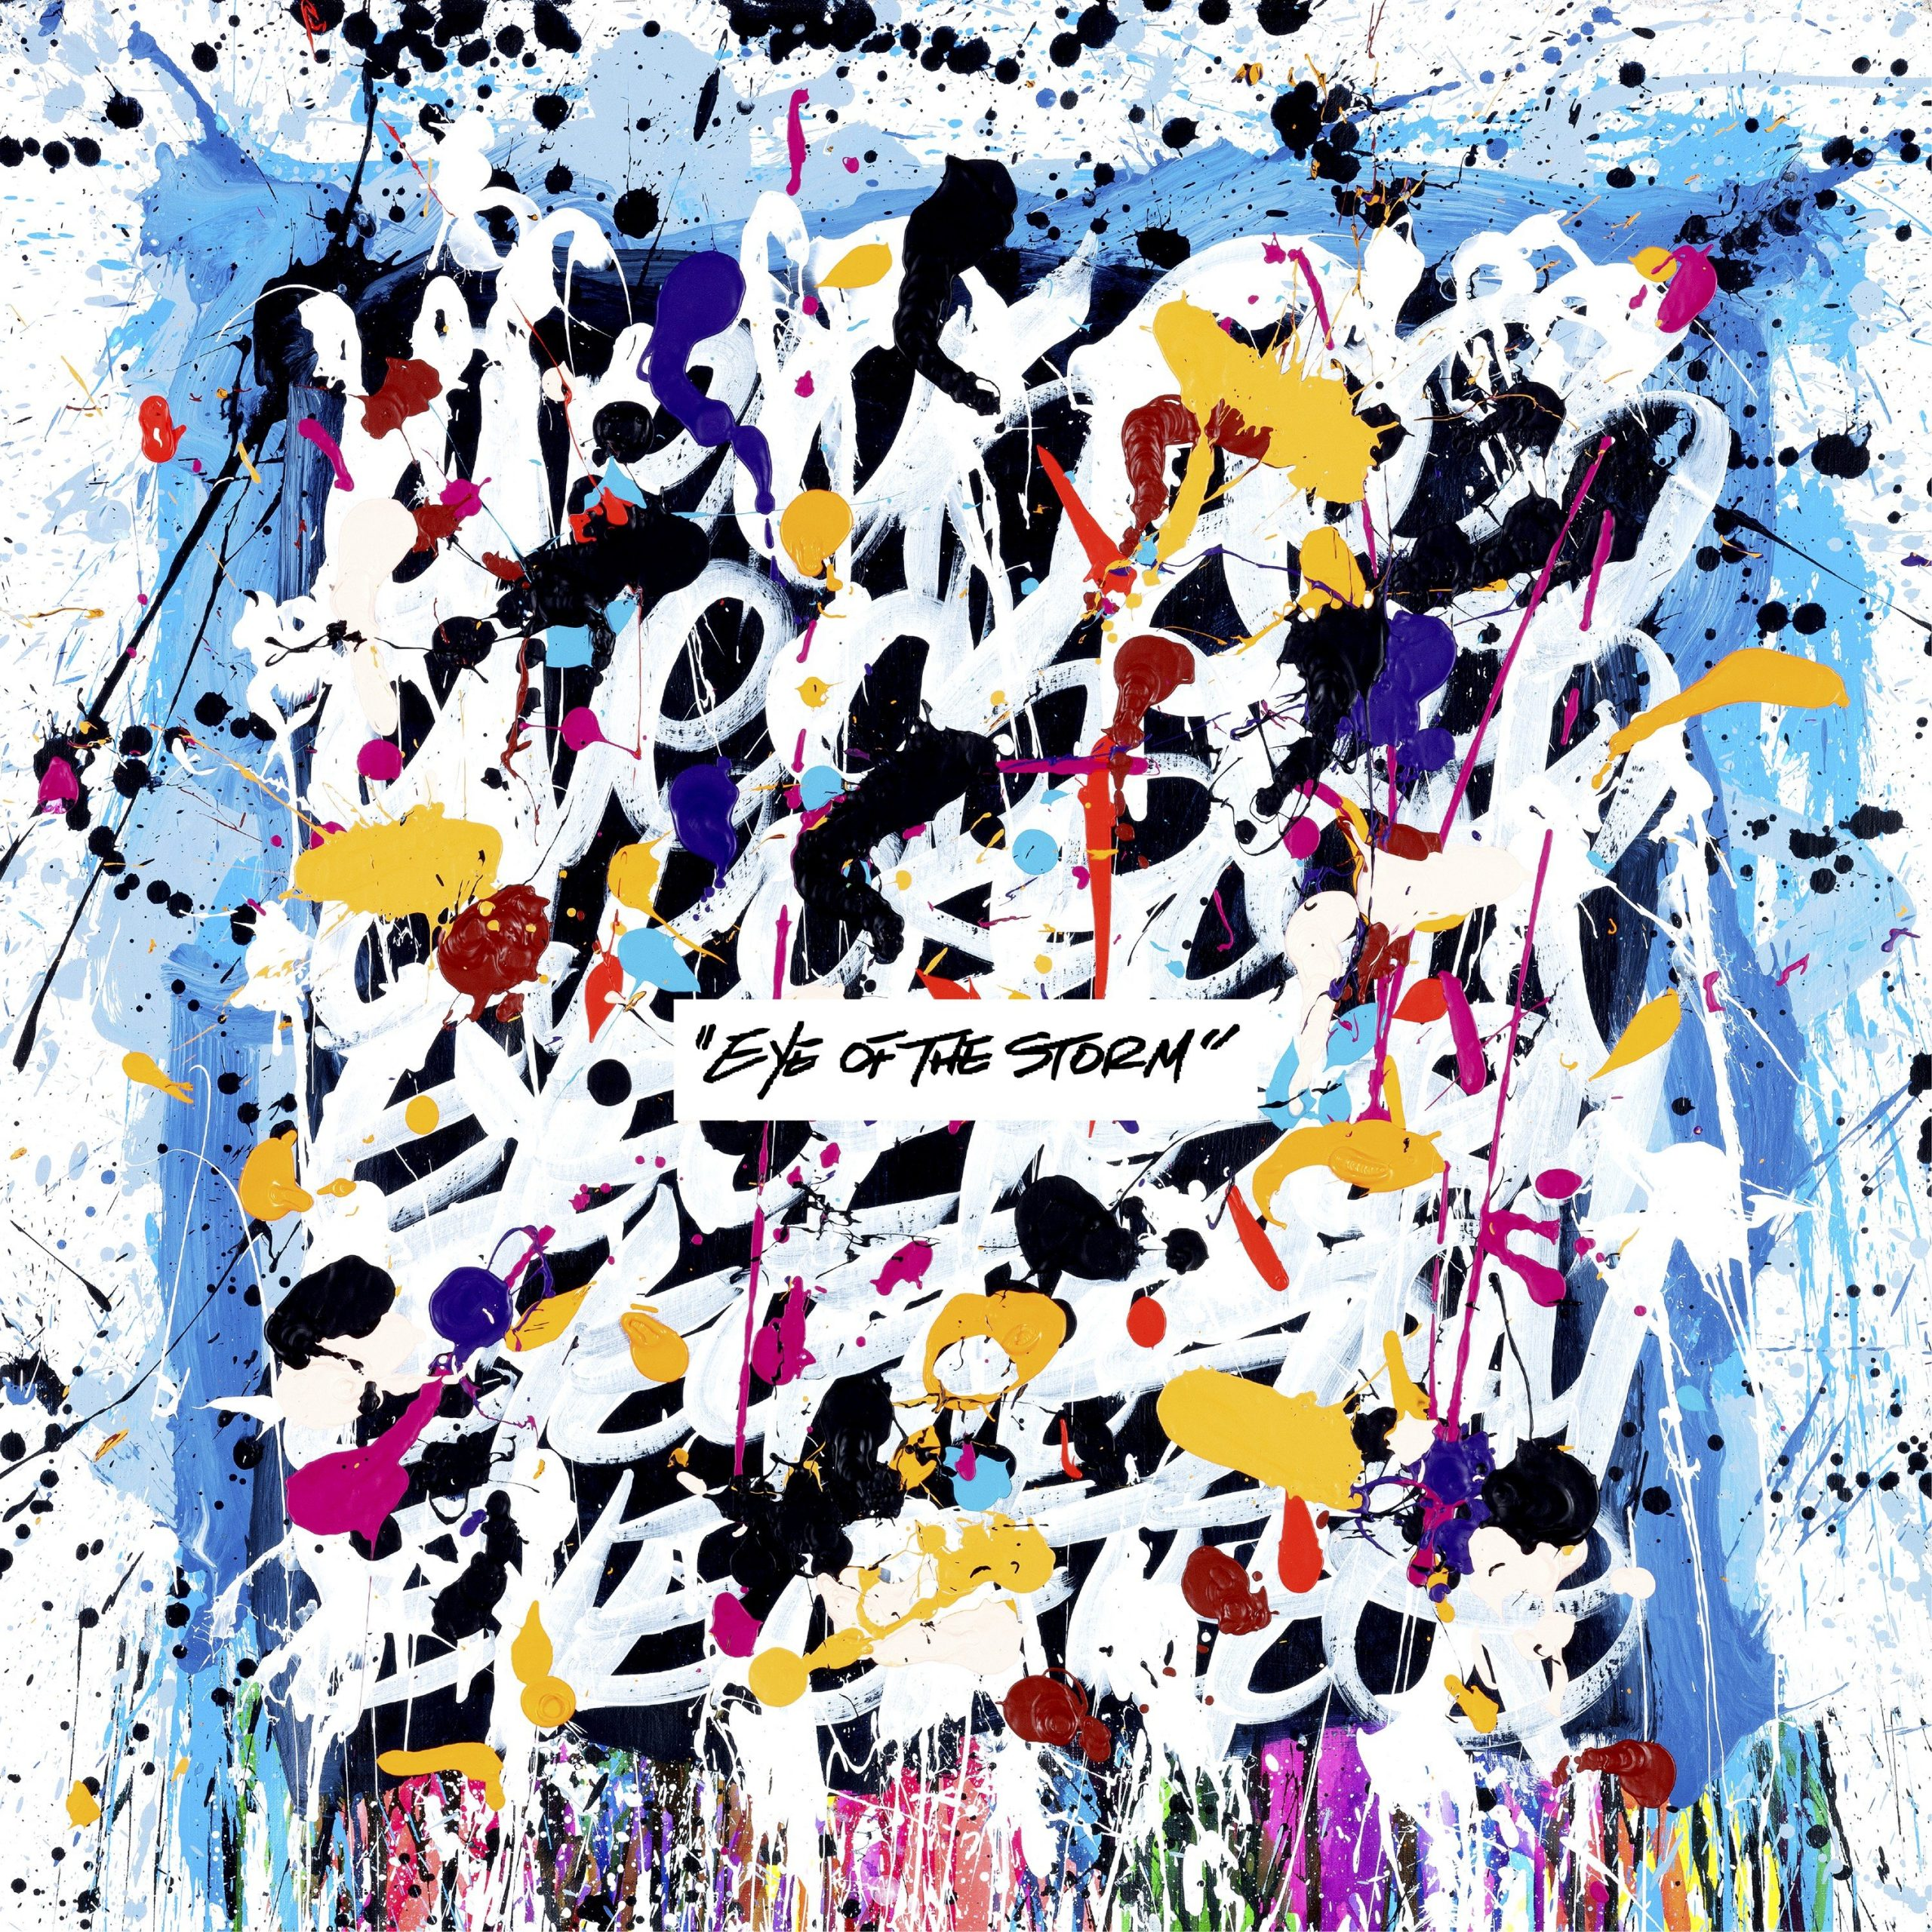 download ONE OK ROCK Eye of the Storm